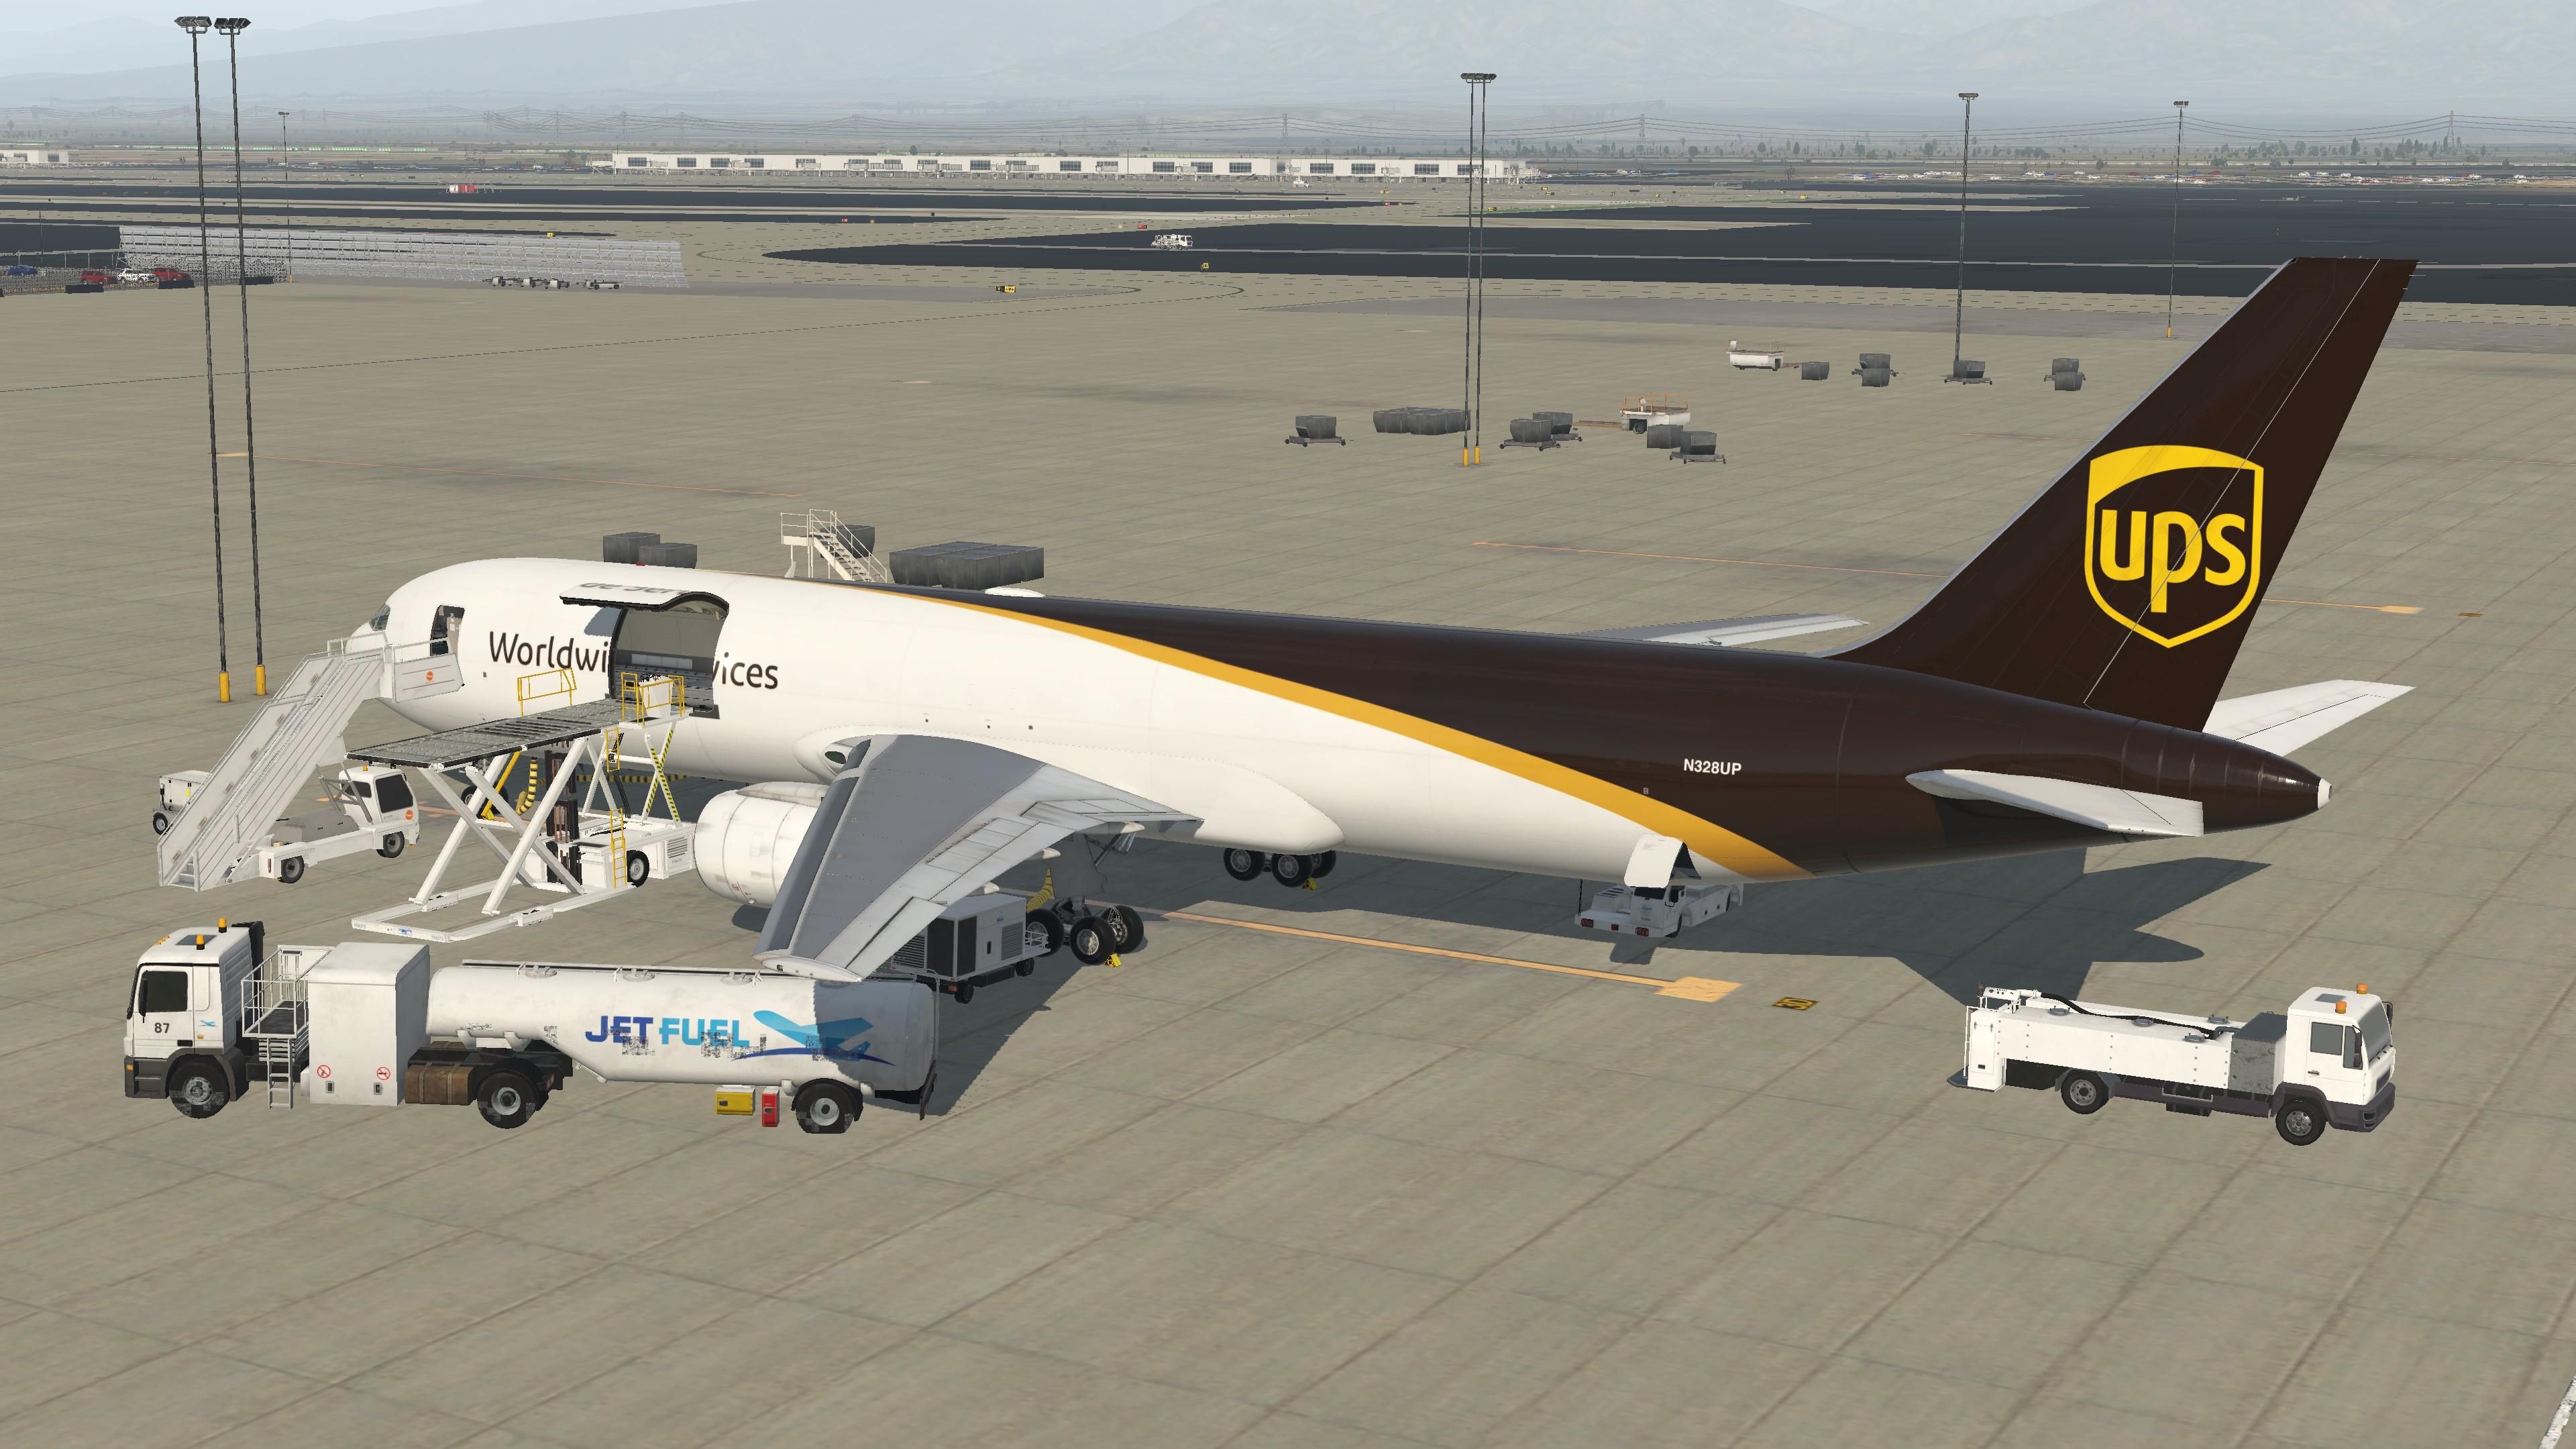 [N328UP] Cargo Loading at KONT